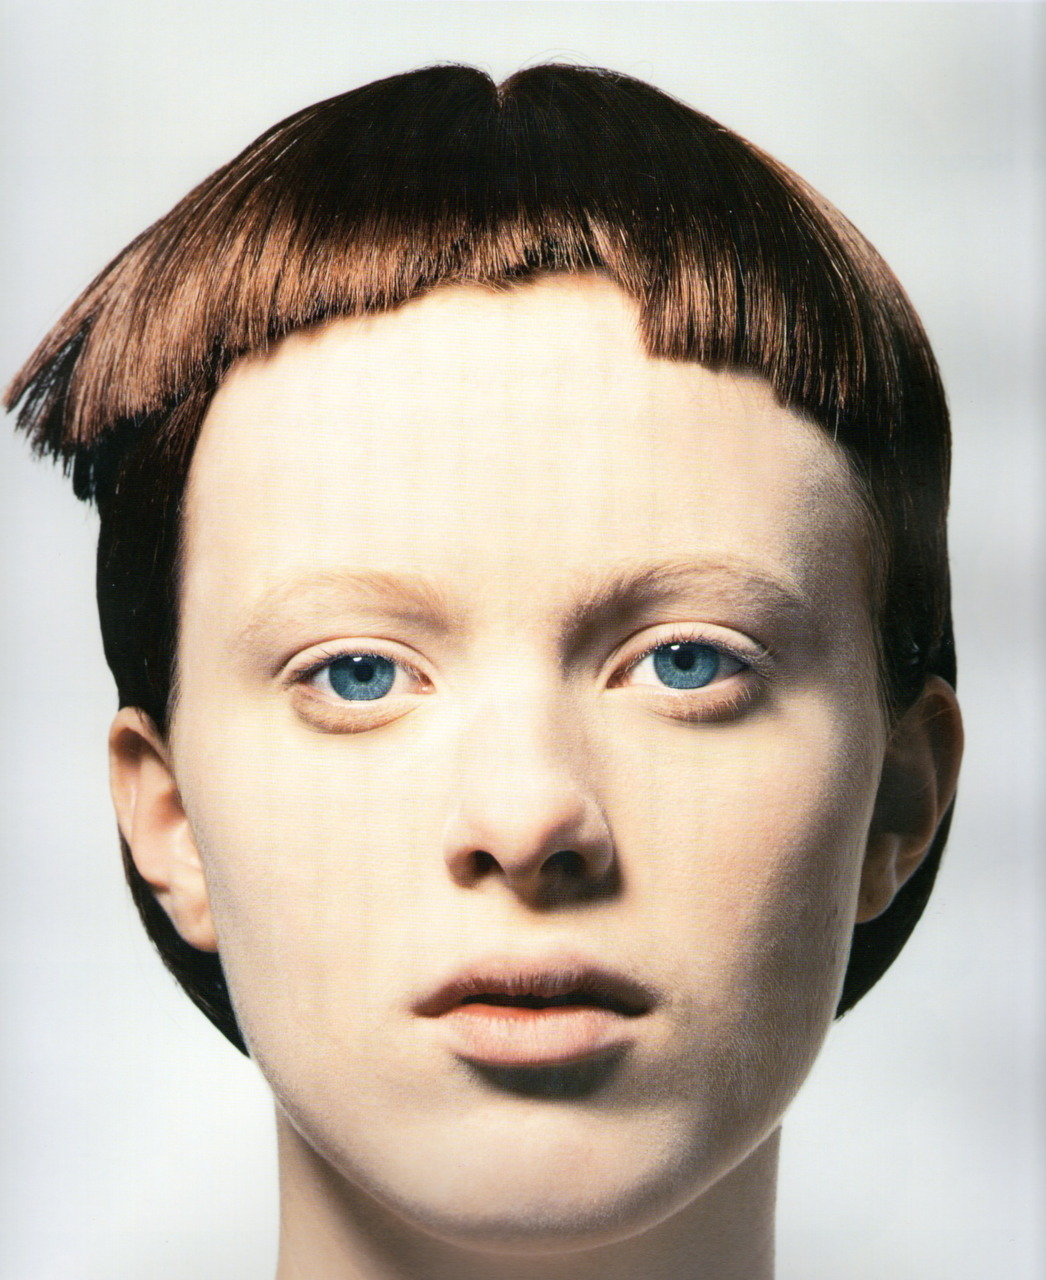 zoku:  Karenphoto David Sims Heads: Hair By Guido